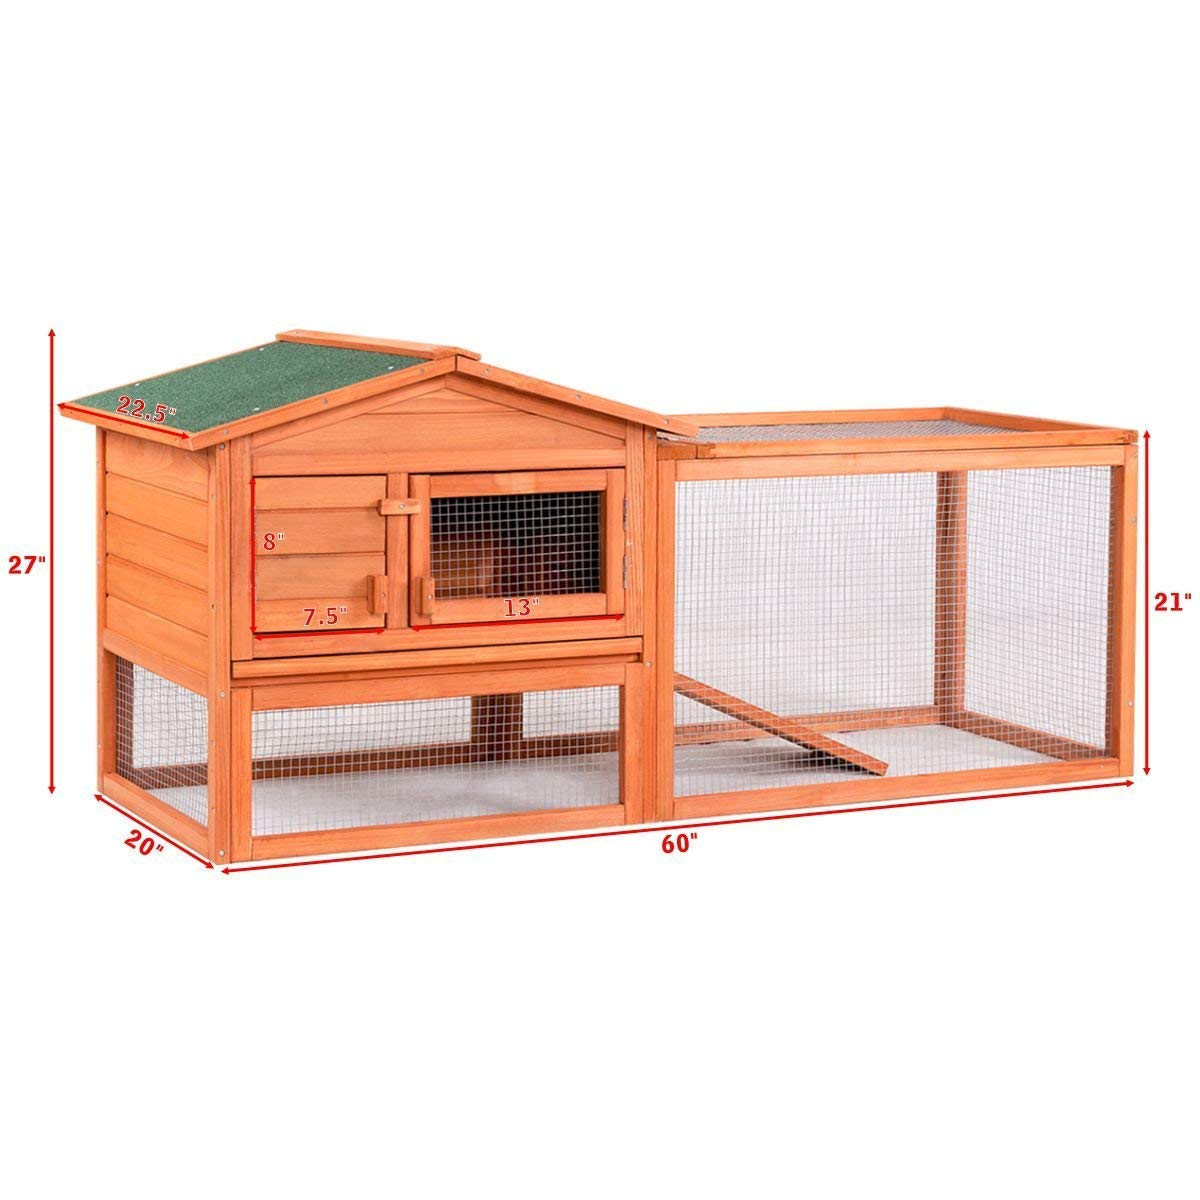 Tangkula Chicken Coop Outdoor Wooden Chicken Coop Garden Backyard Farm Bunny Hen House Rabbit Hutch Small Animal Cage Pet Supplies for Chicken, Duck, Rabbit, etc (61.5'' x 20.5'' x 27''(L x W x H)) by Tangkula (Image #3)